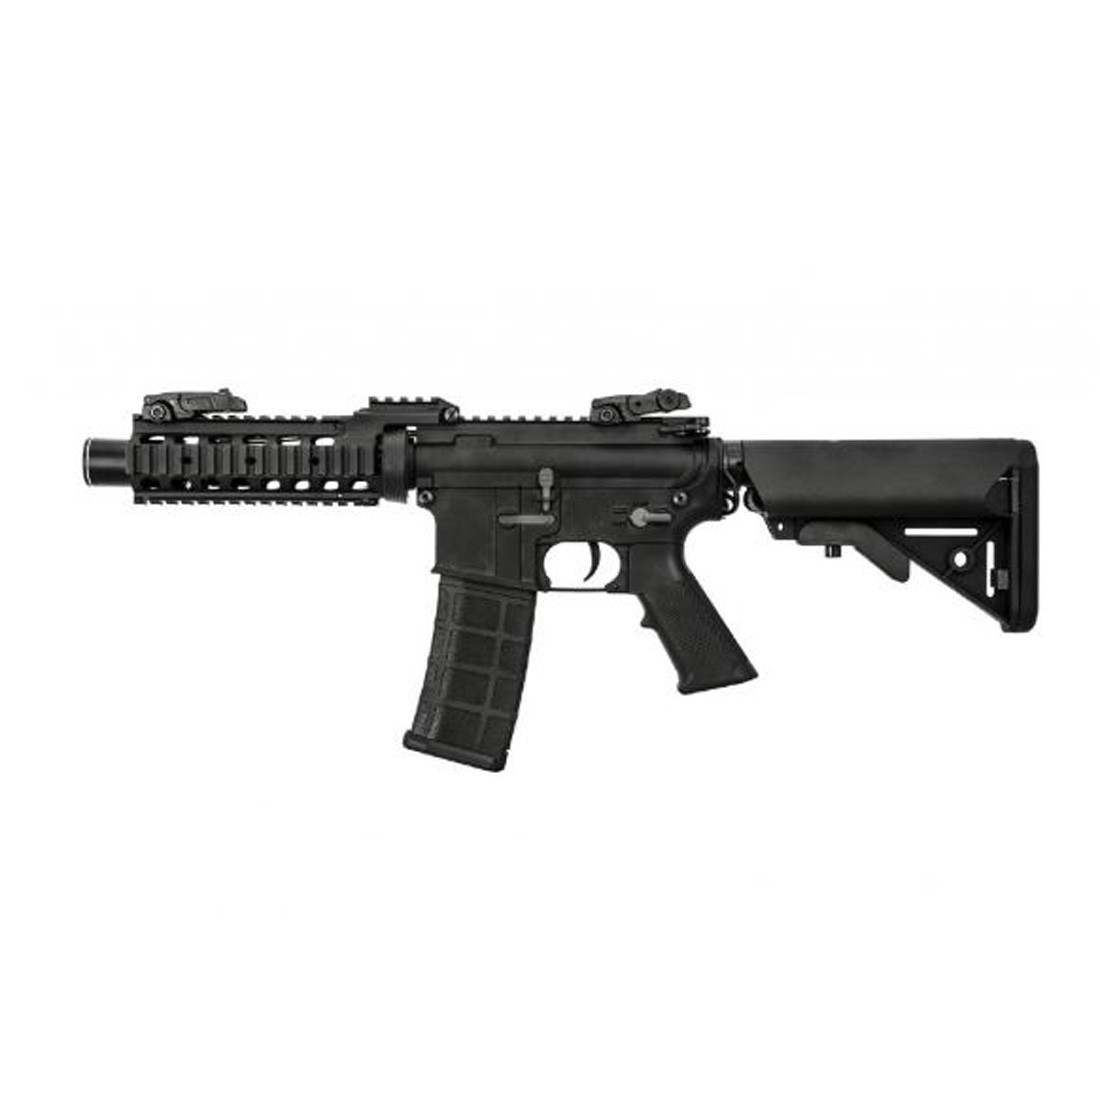 Nuprol Delta Pioneer Breacher Airsoft AEG Rifle (Black)